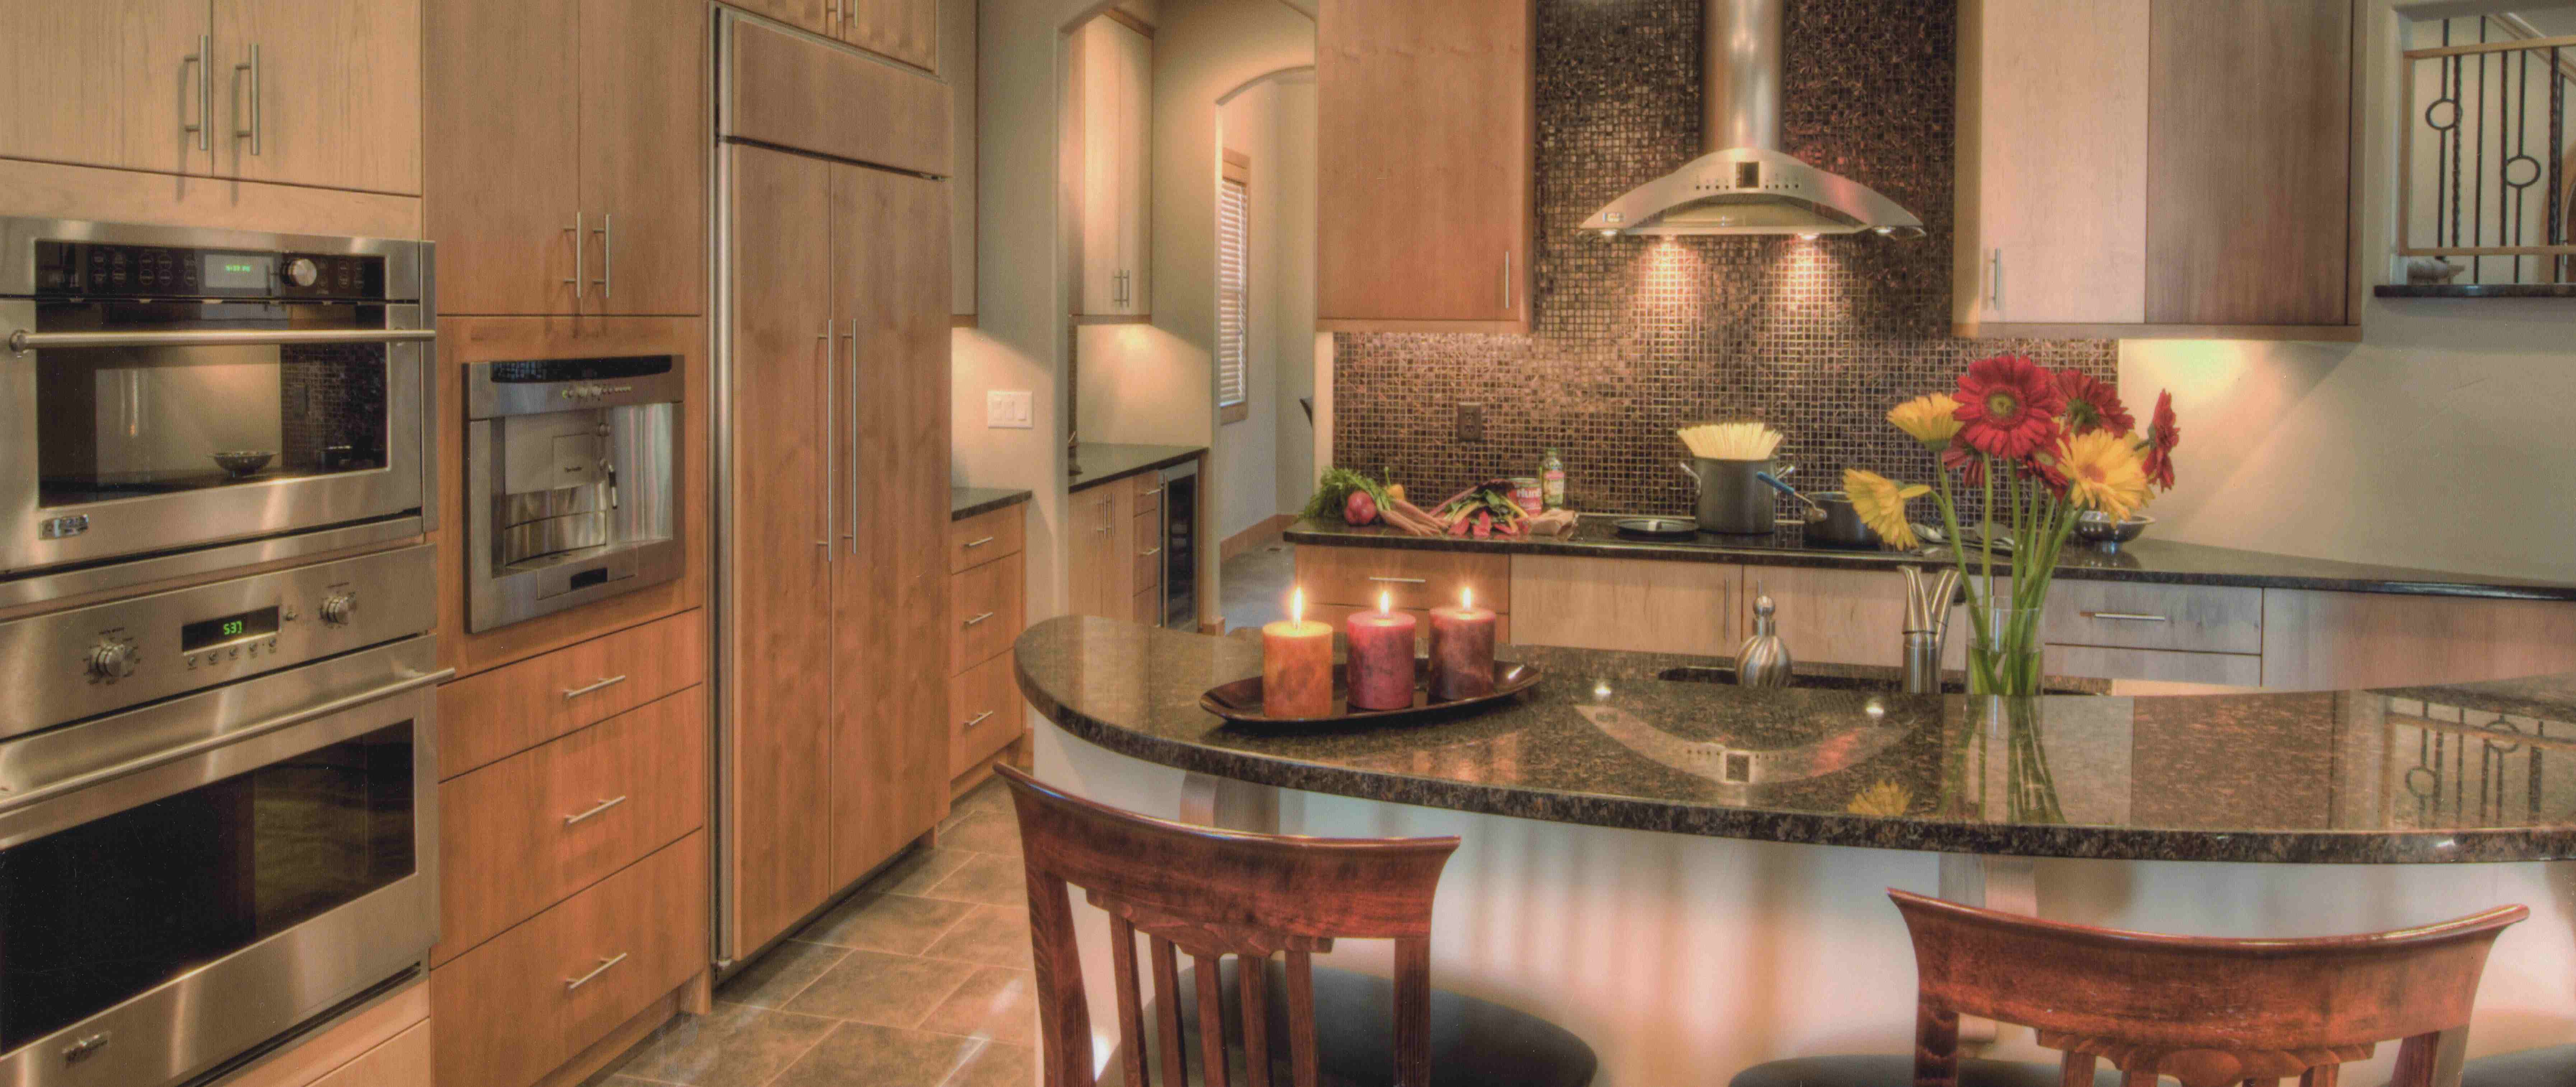 Consider Building Frameless Cabinets Popular Woodworking Magazine